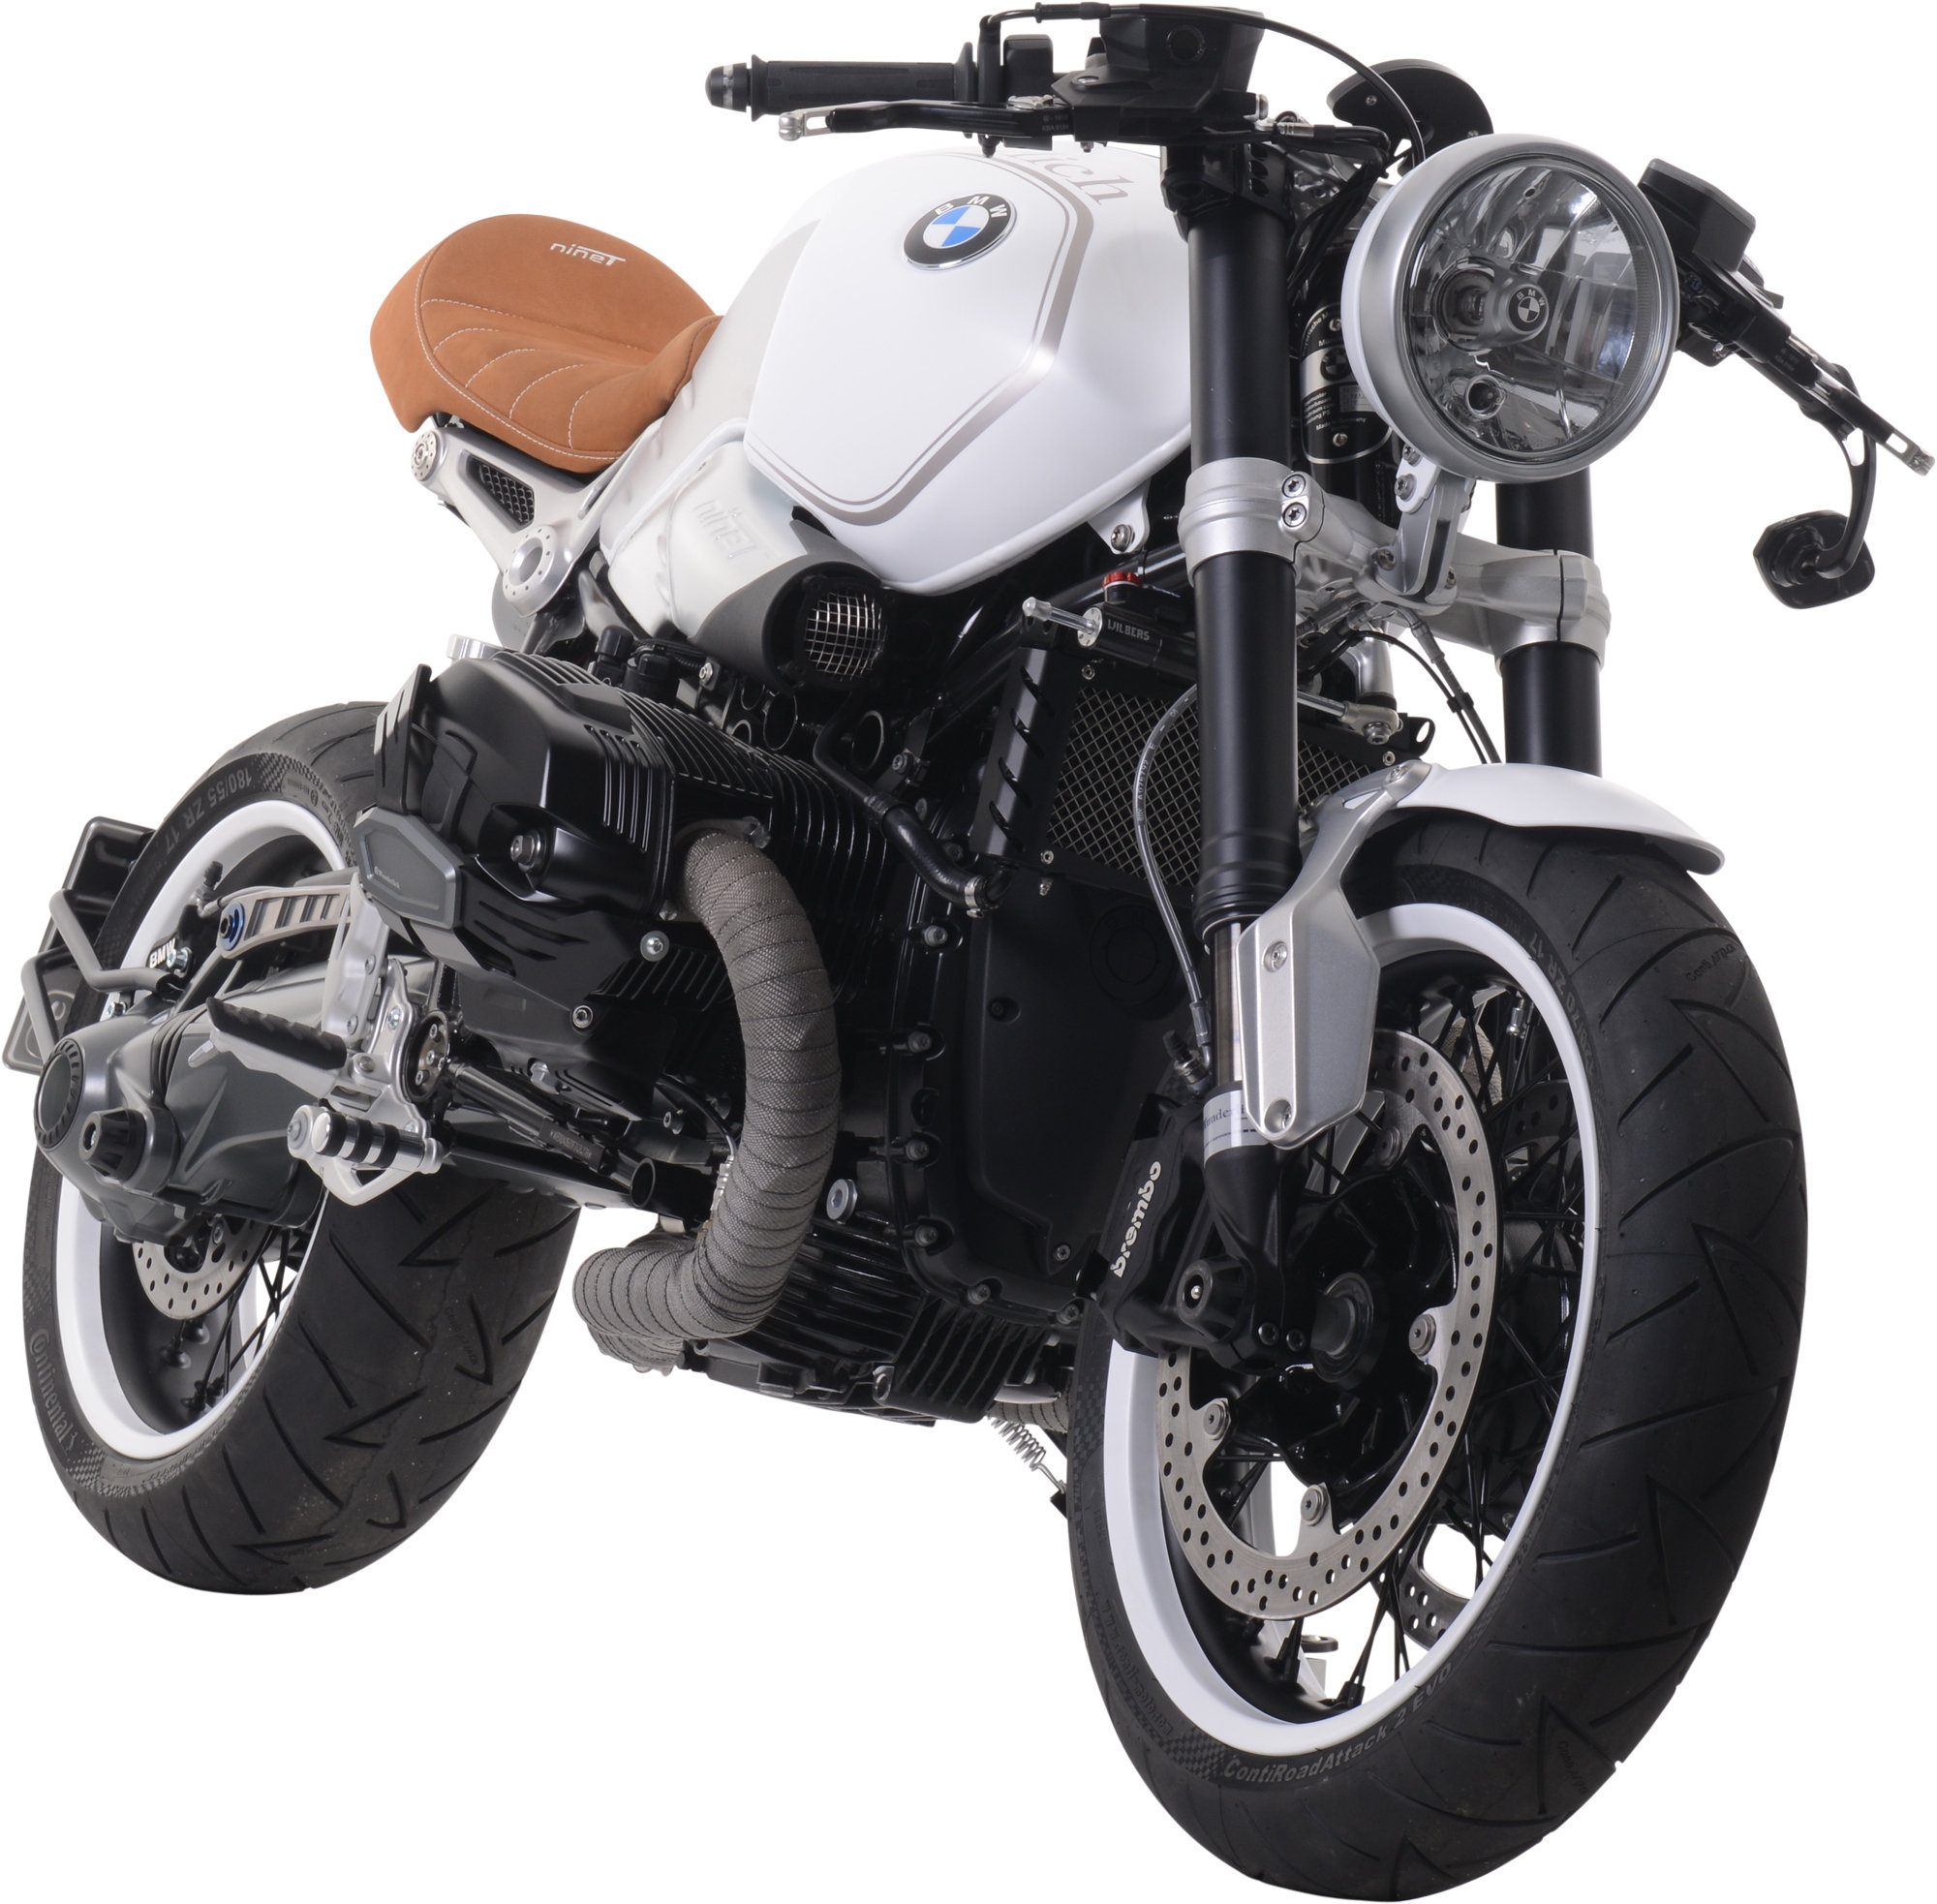 wunderlich white star custom bmw r ninet cafe racer rescogs. Black Bedroom Furniture Sets. Home Design Ideas